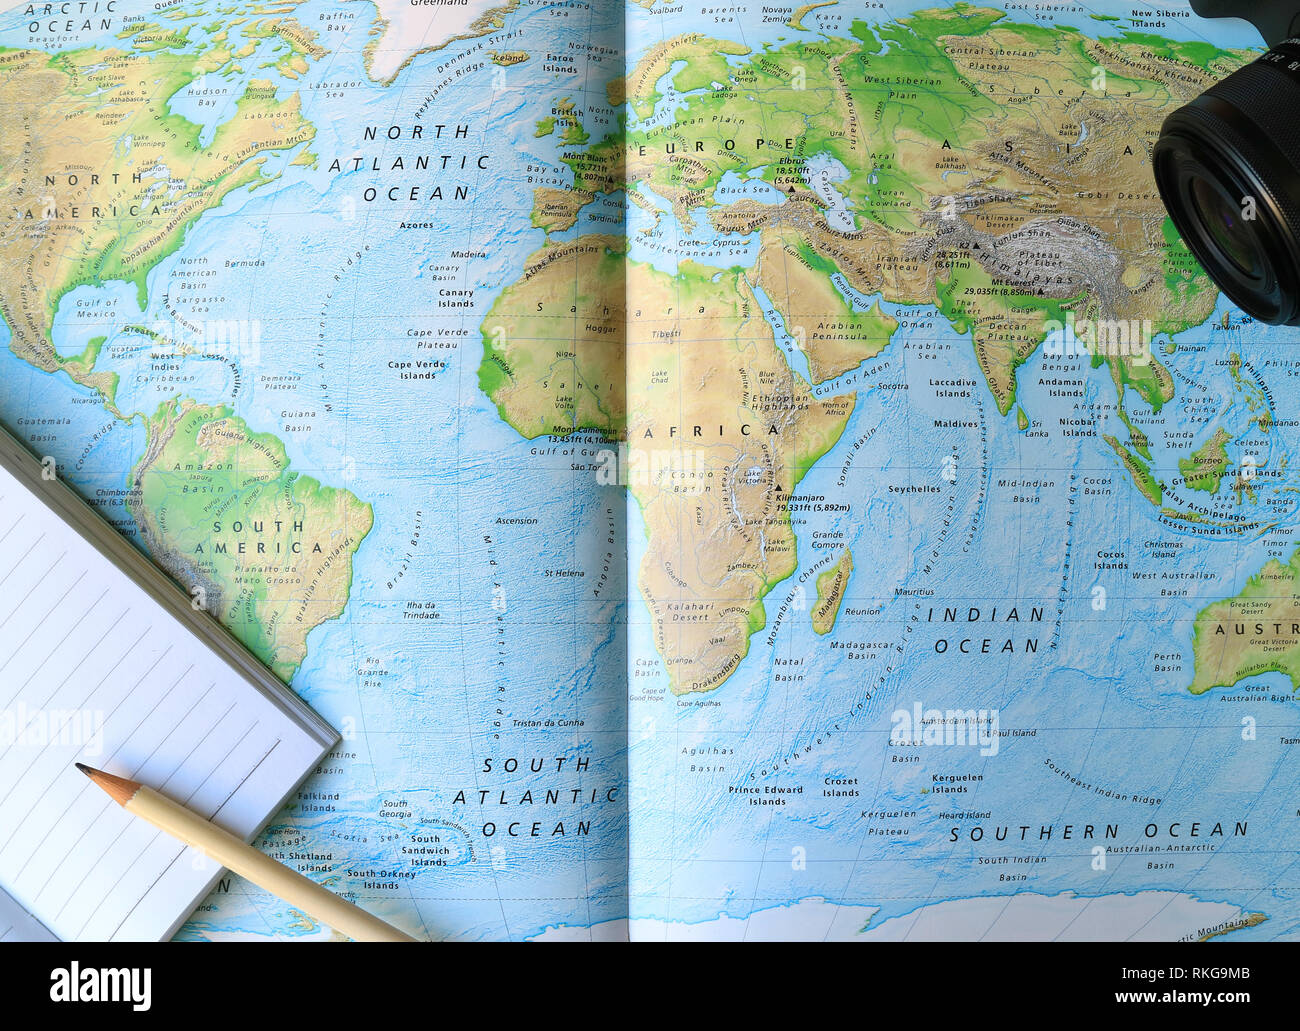 Lined Notebook with White Pencil and Camera on the World Map Stock Photo